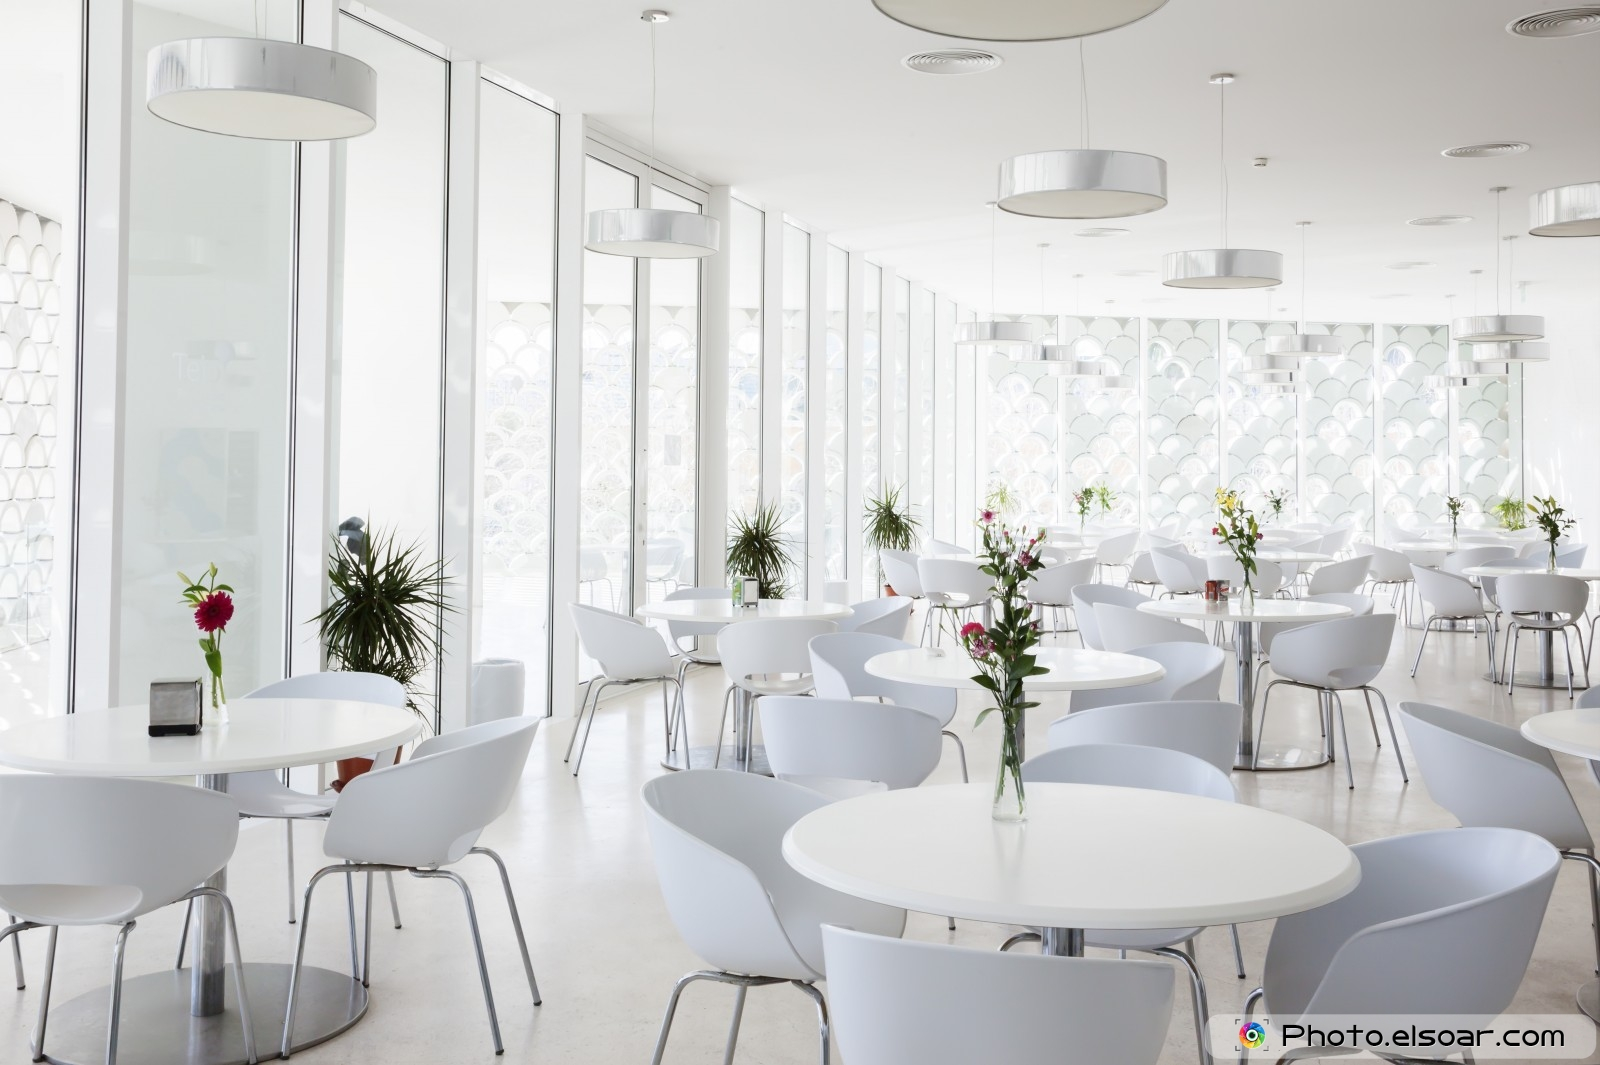 25 Cafe Interior Design Photos additionally Watch together with Ideas For Bathroom Design Minimalist And Modern Restrooms 2858 furthermore White Shark Of London also CarInteriorRetrims. on classic italian interior design